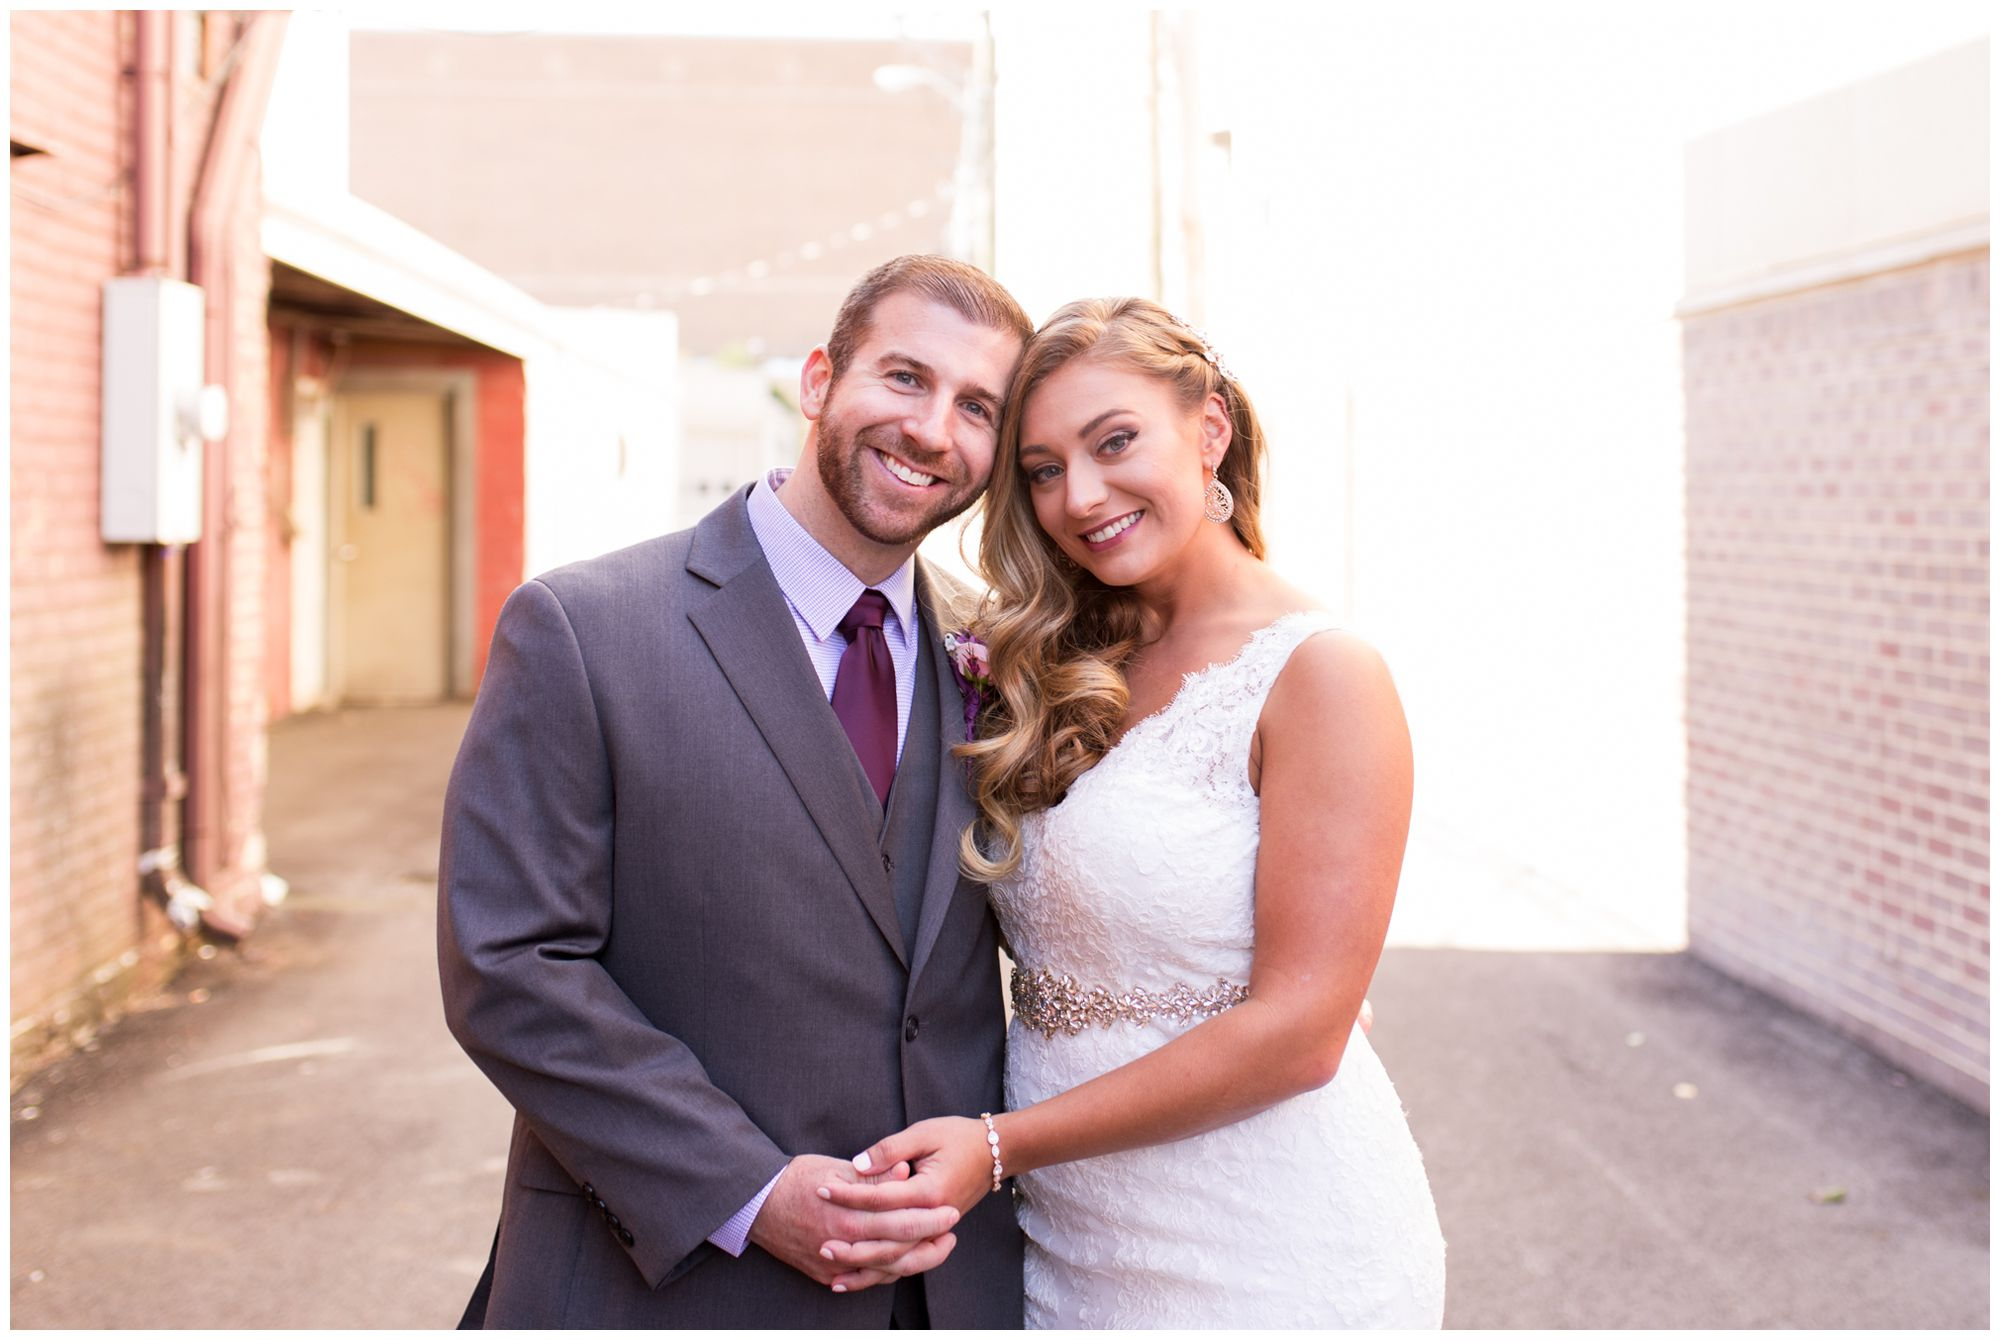 bride and groom Wabash wedding portraits at Charley Creek Inn